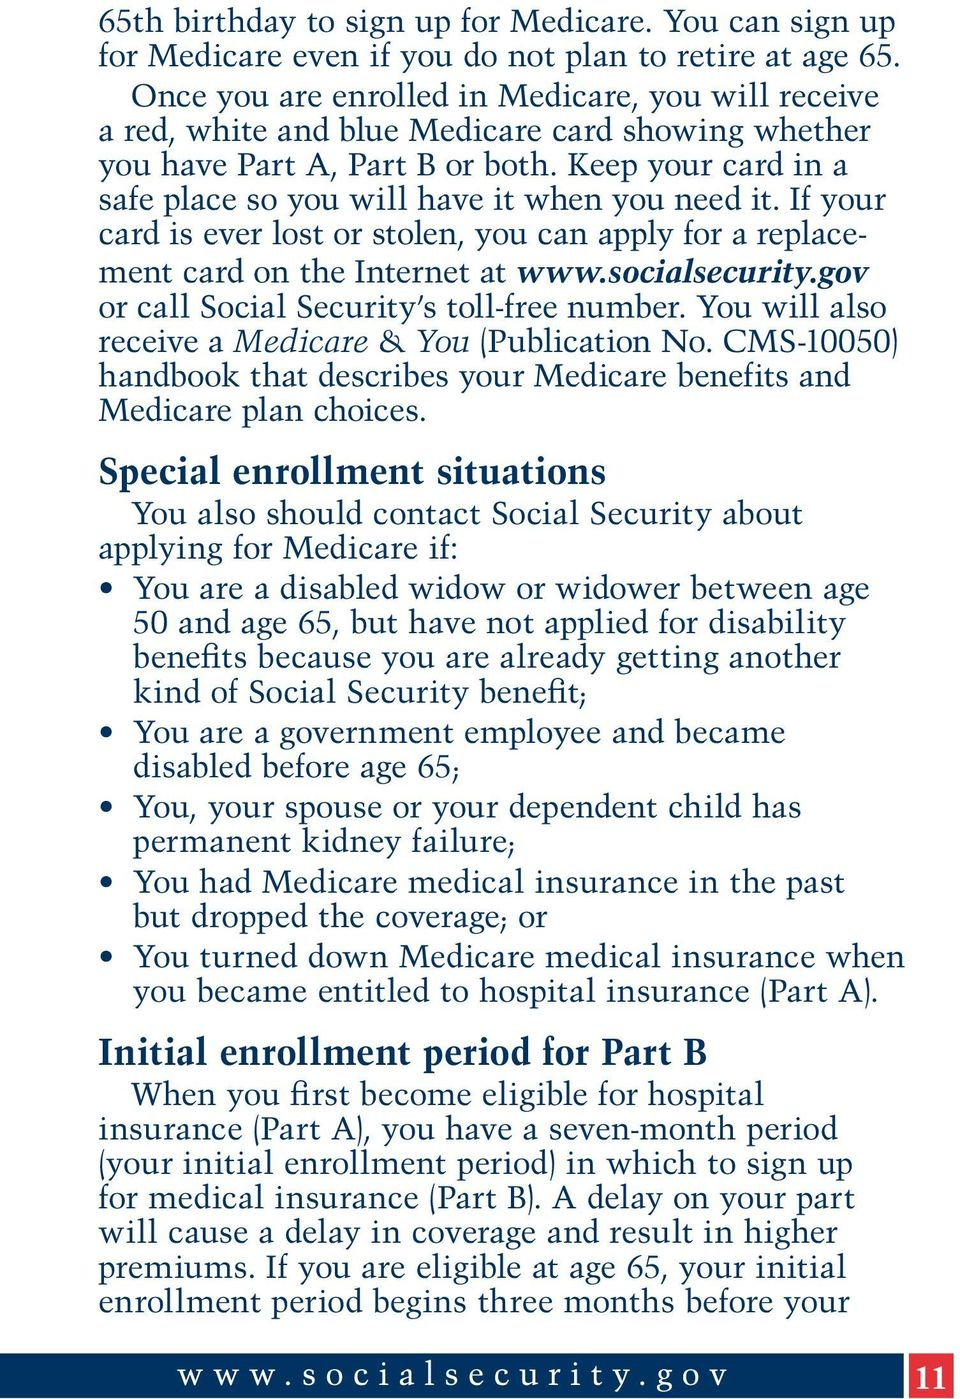 Keep your card in a safe place so you will have it when you need it. If your card is ever lost or stolen, you can apply for a replacement card on the Internet at www.socialsecurity.